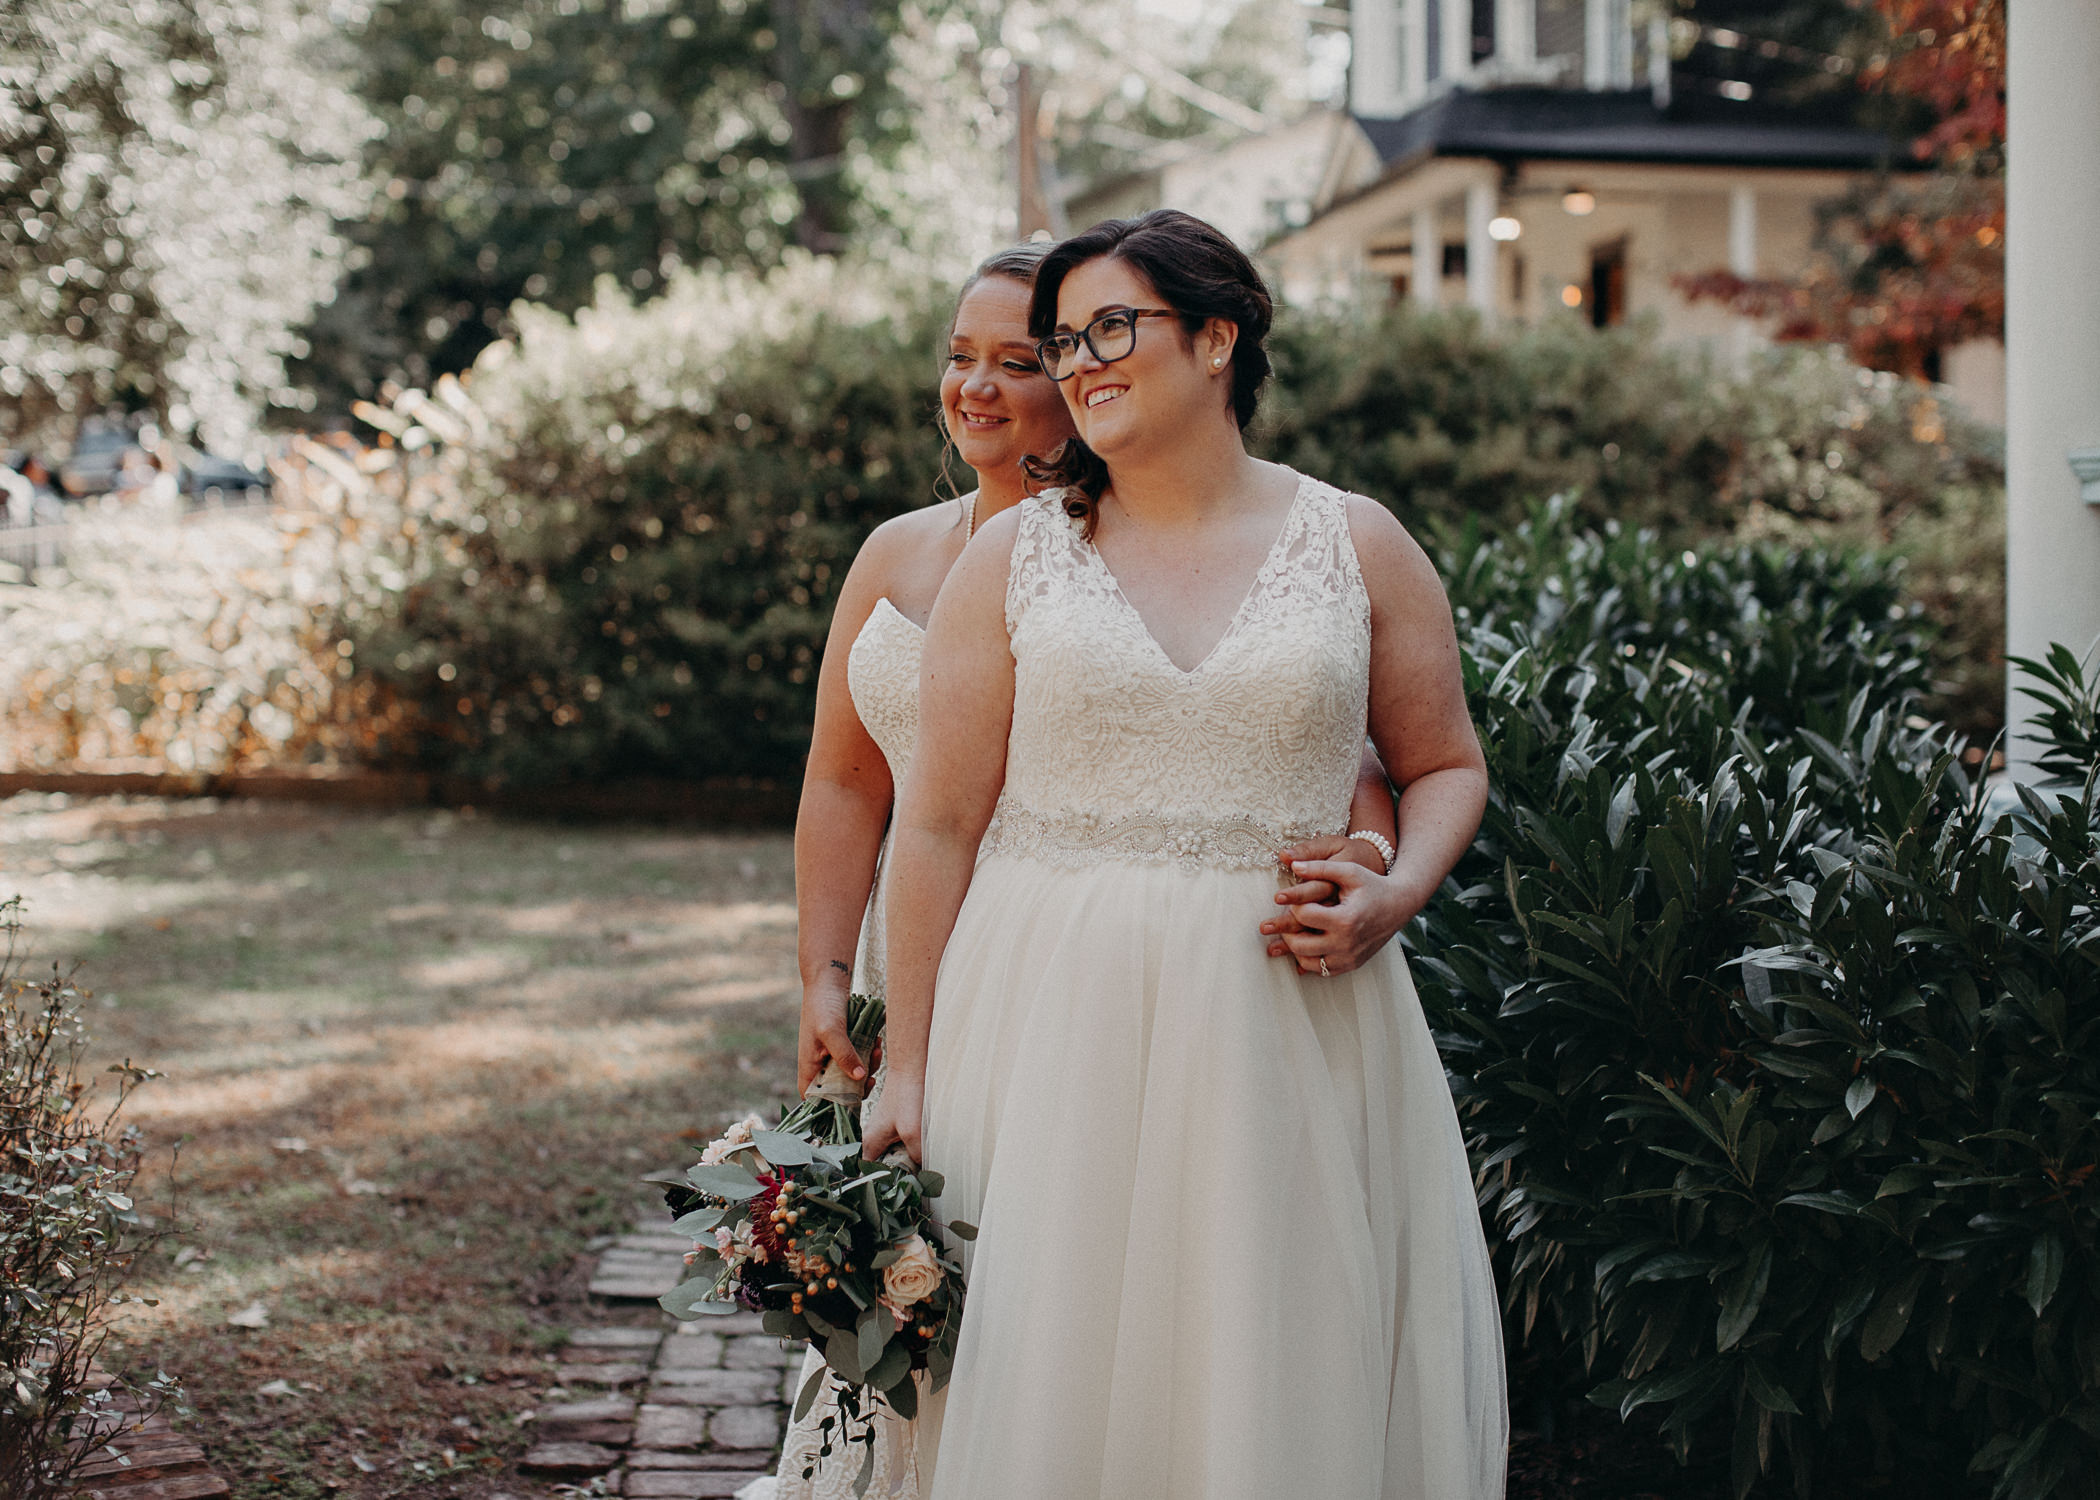 34 - Atlanta wedding photographer - Same sex wedding - wedding dress - details - ceremony - reception - bridal party - two brides. Aline Marin Photography .jpg.JPG